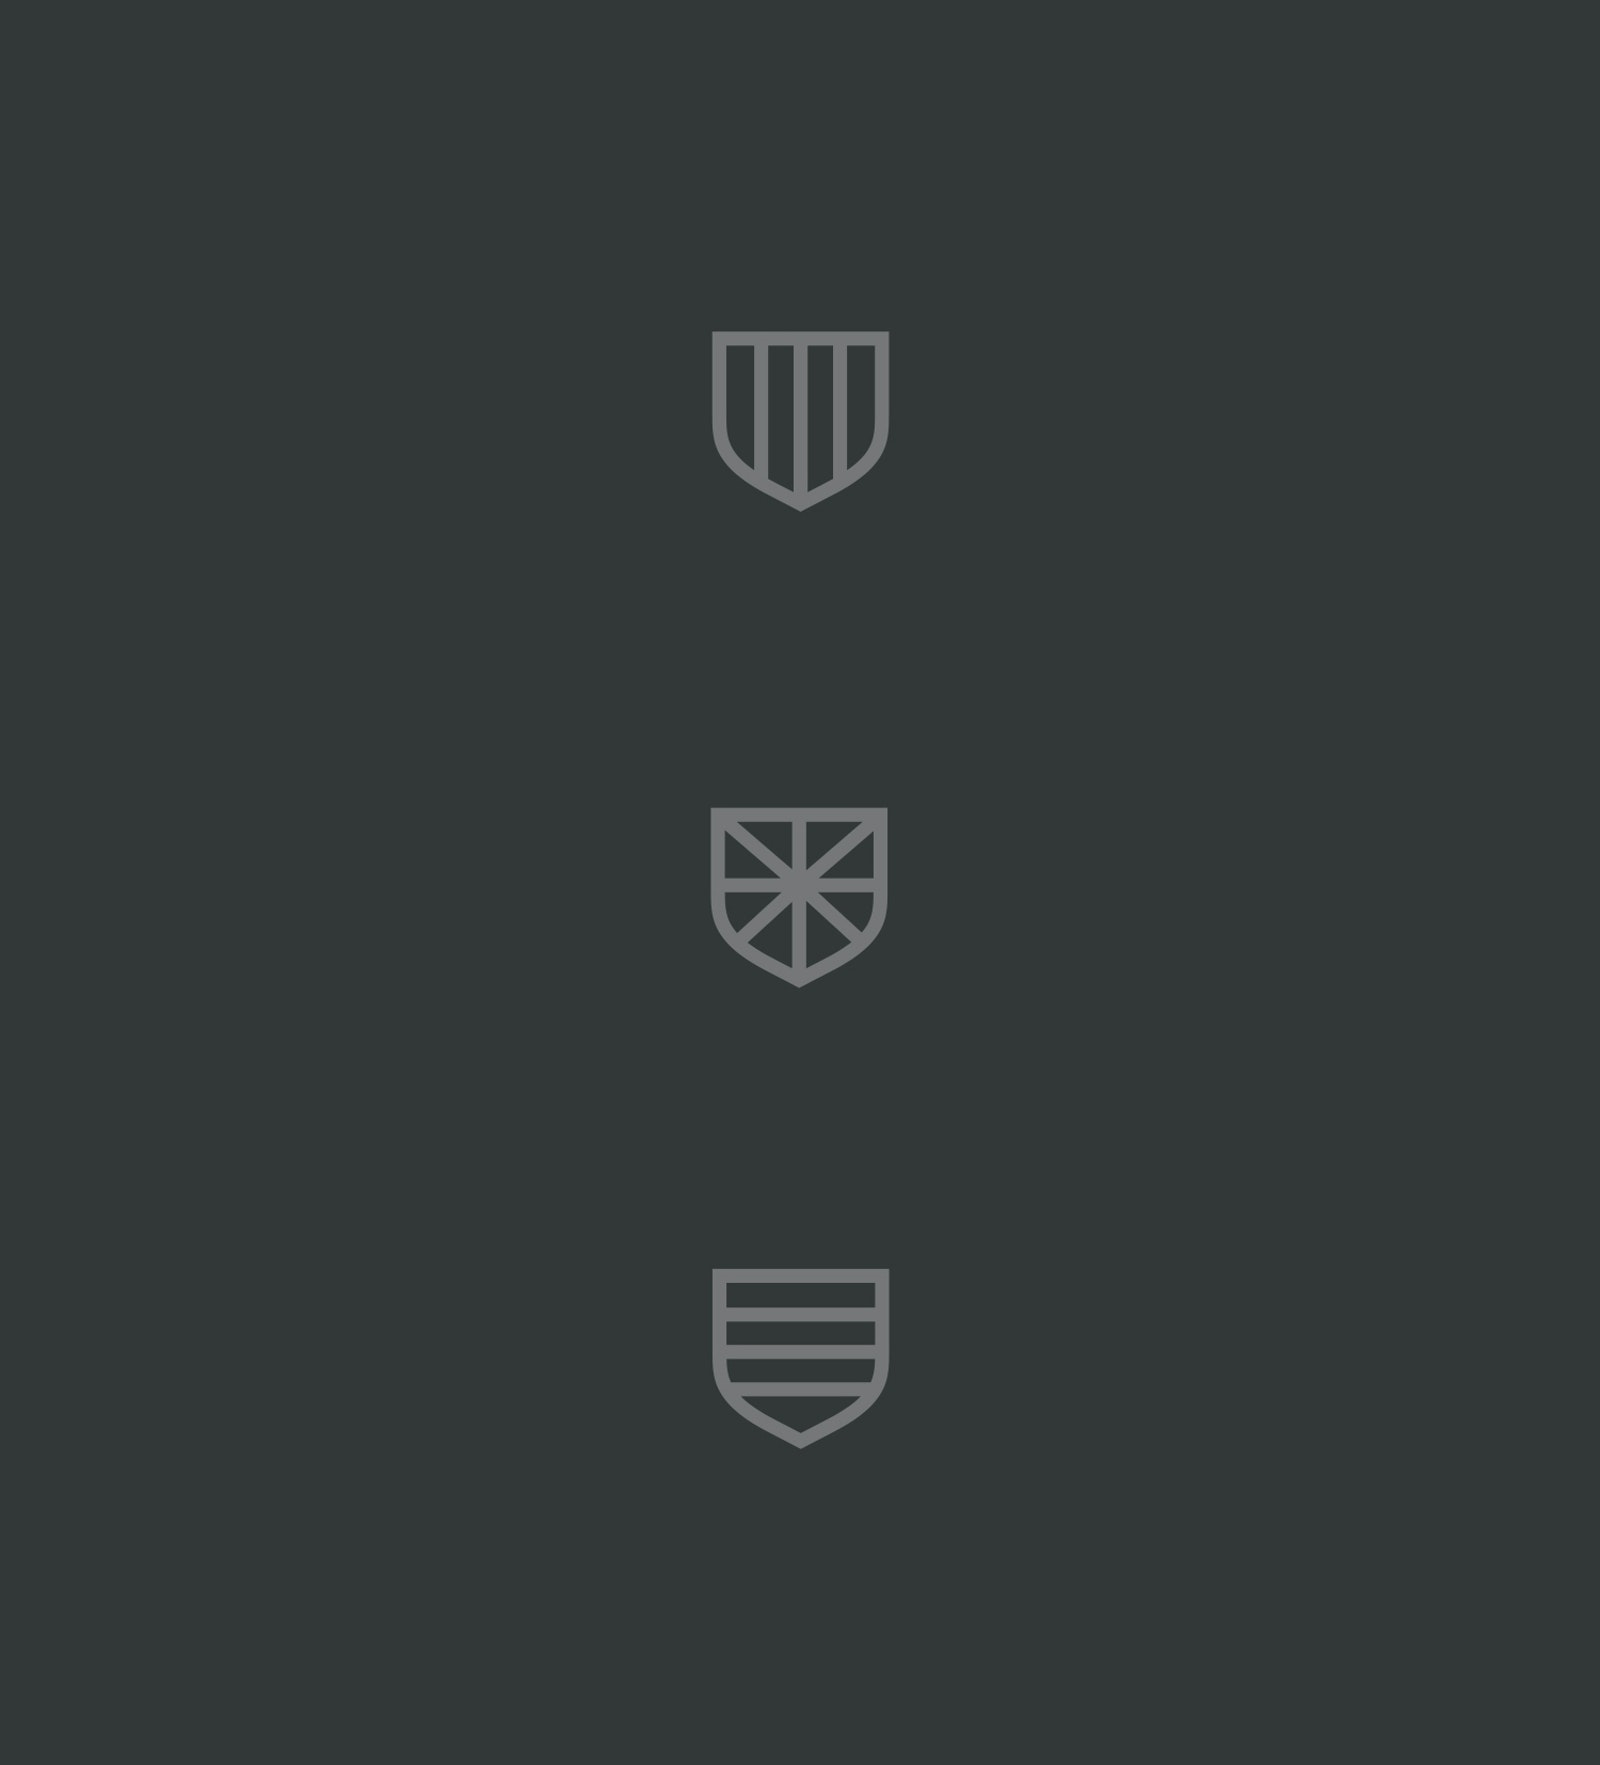 Stahl icons